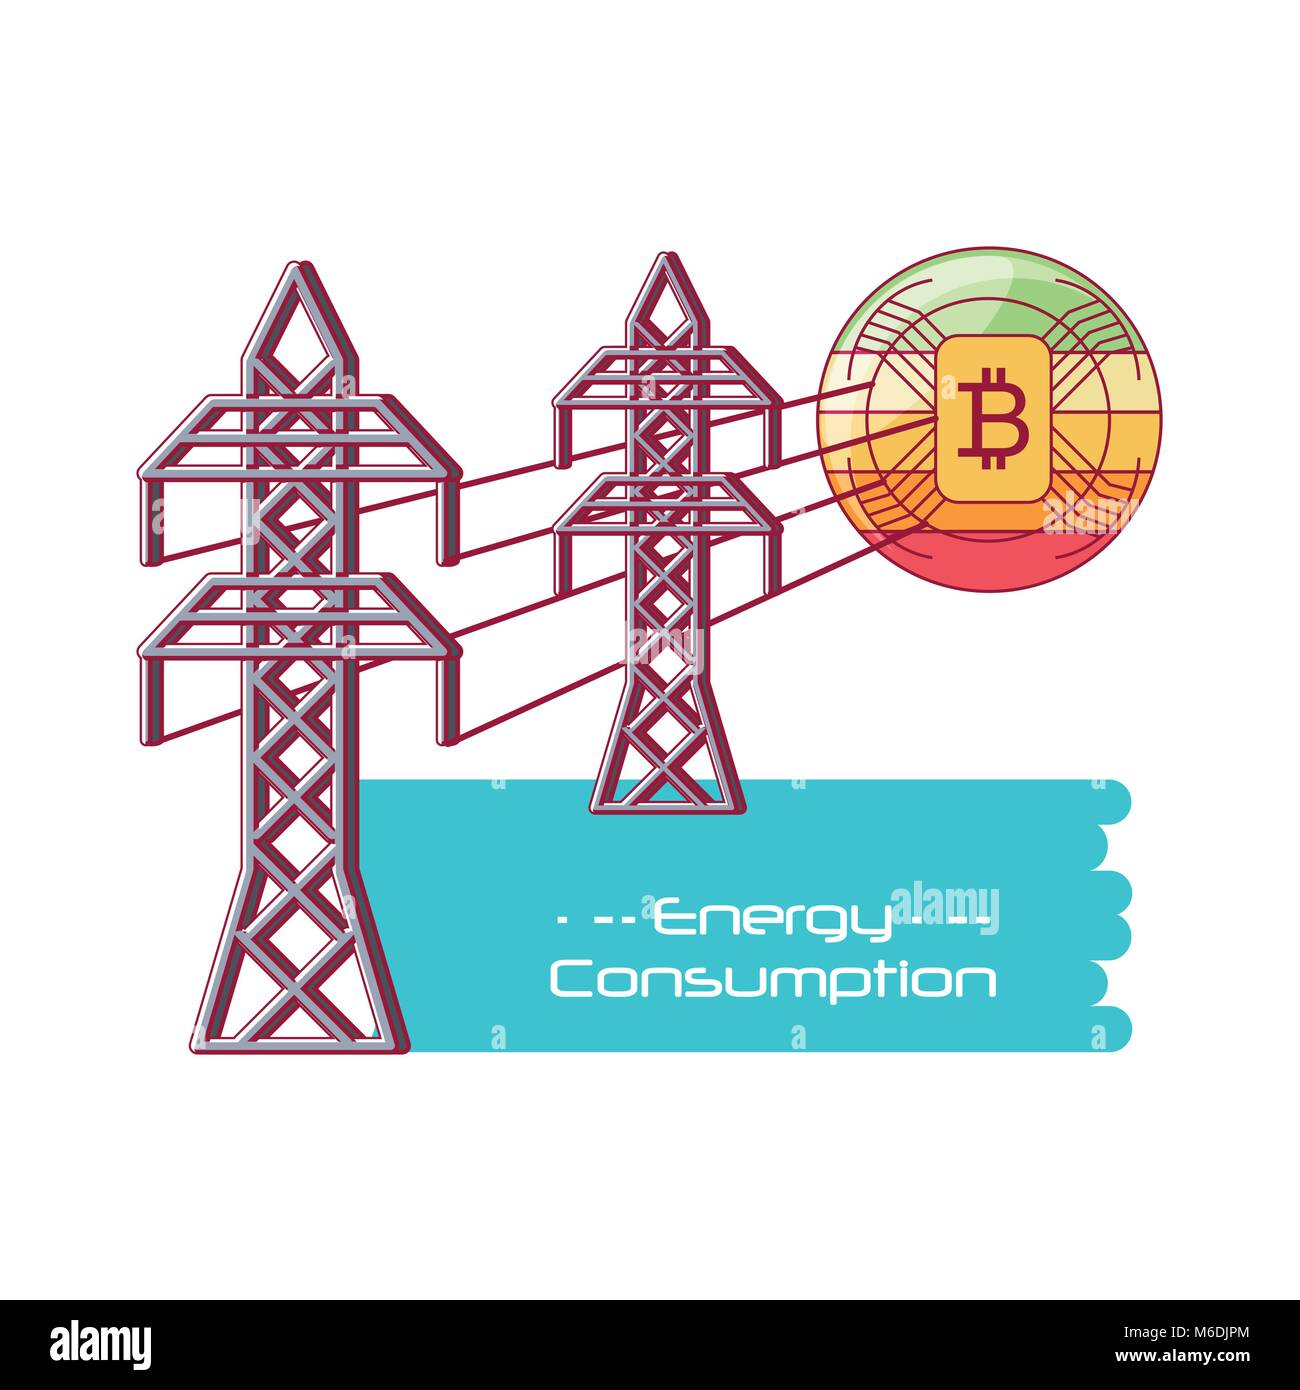 Energy Consumption design with energy towers and bitcoins over white background, colorful design vector illustration - Stock Image